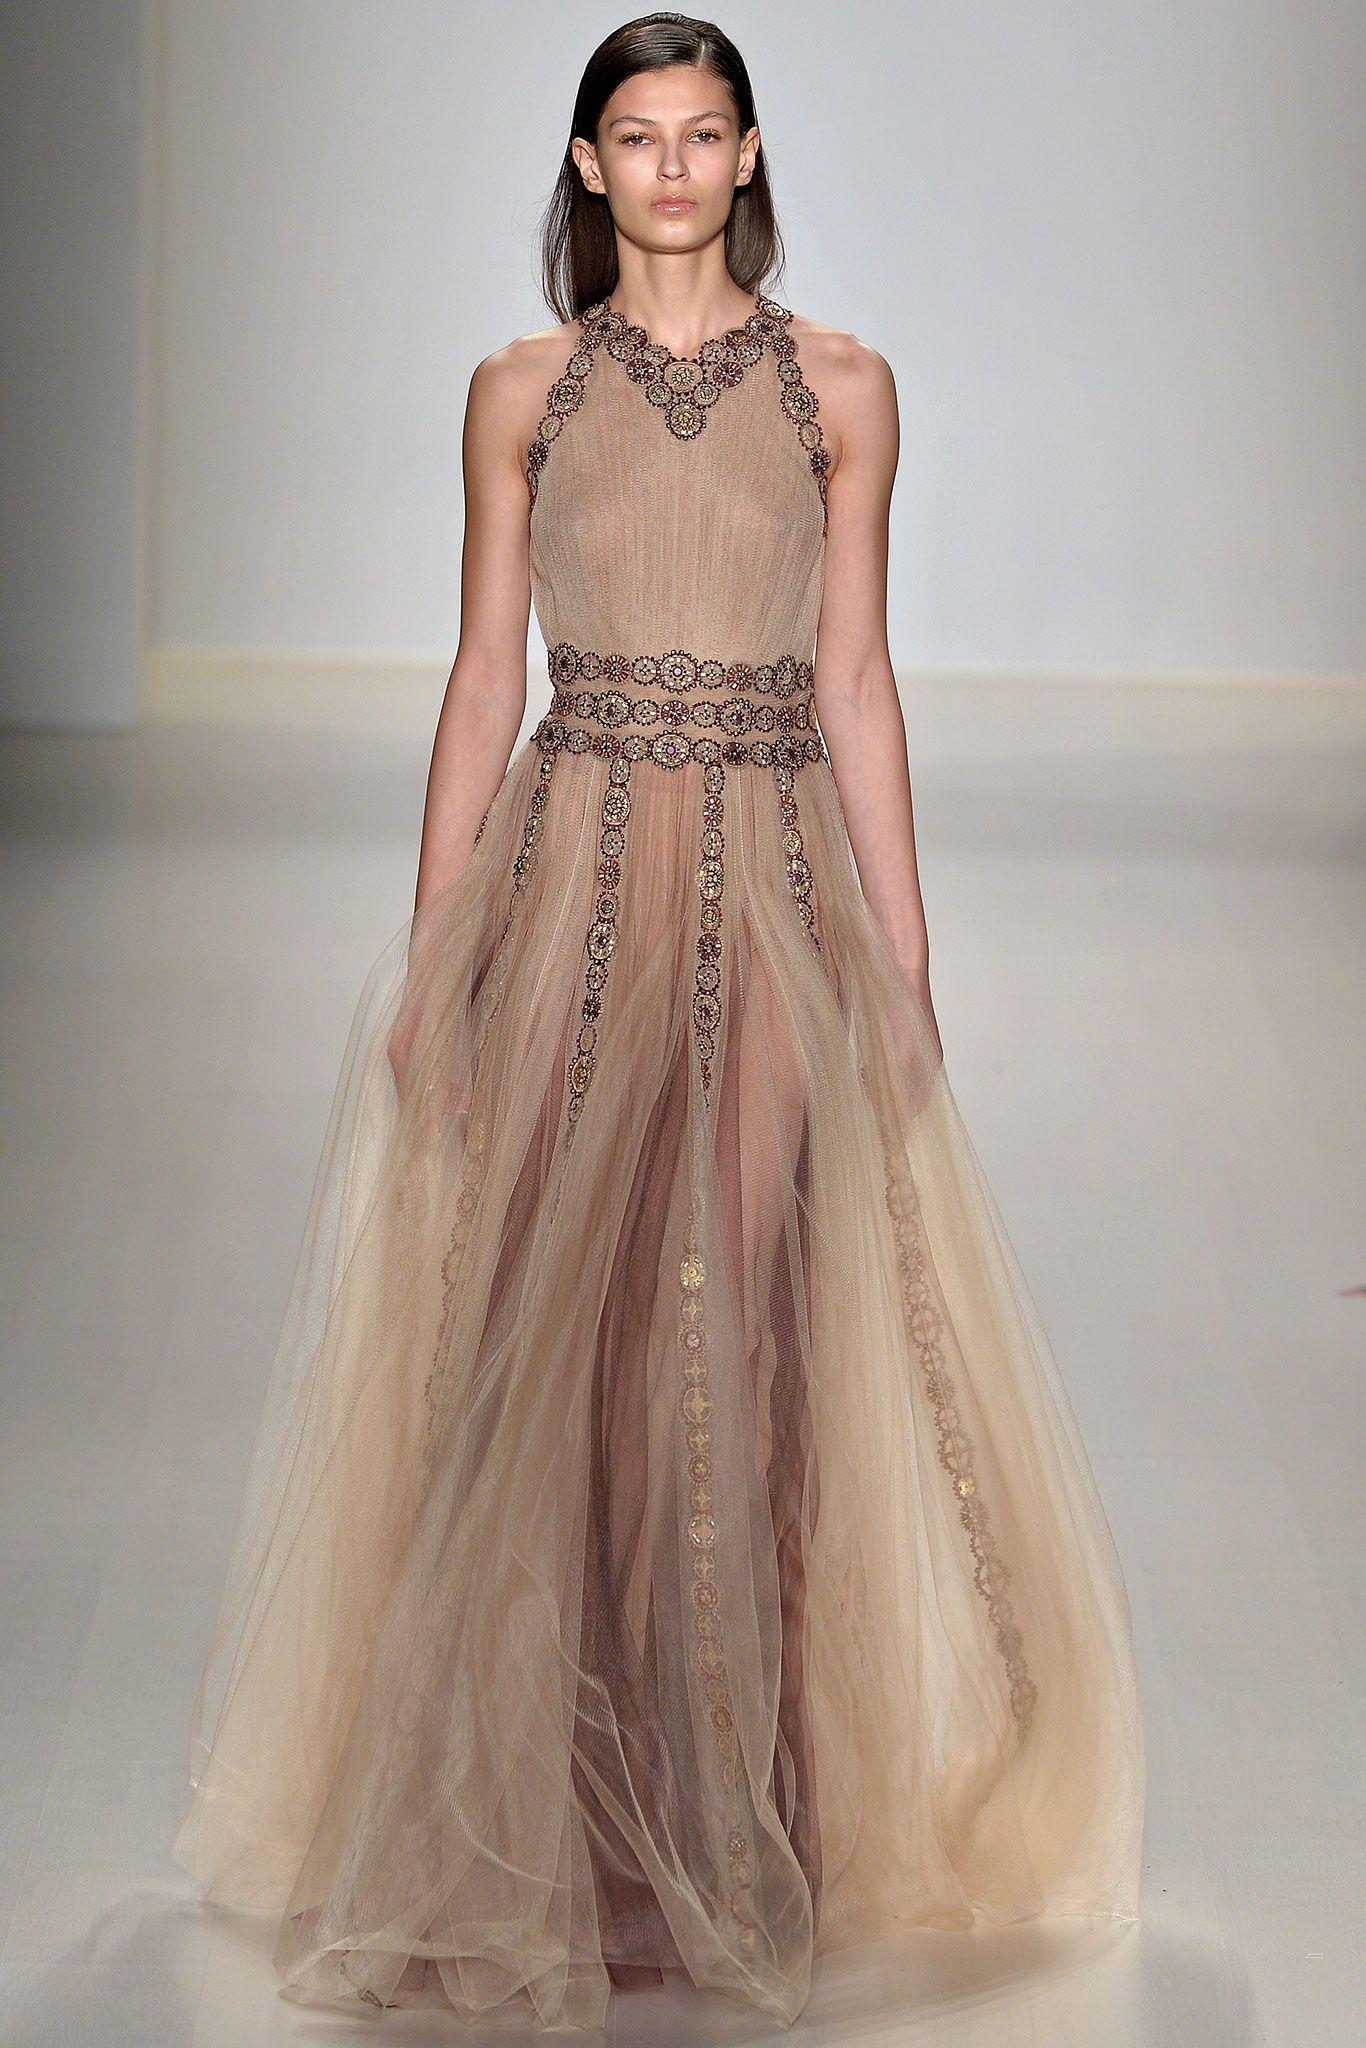 Tadashi Shoji - Fall 2015 Ready-to-Wear - Look 33 of 40